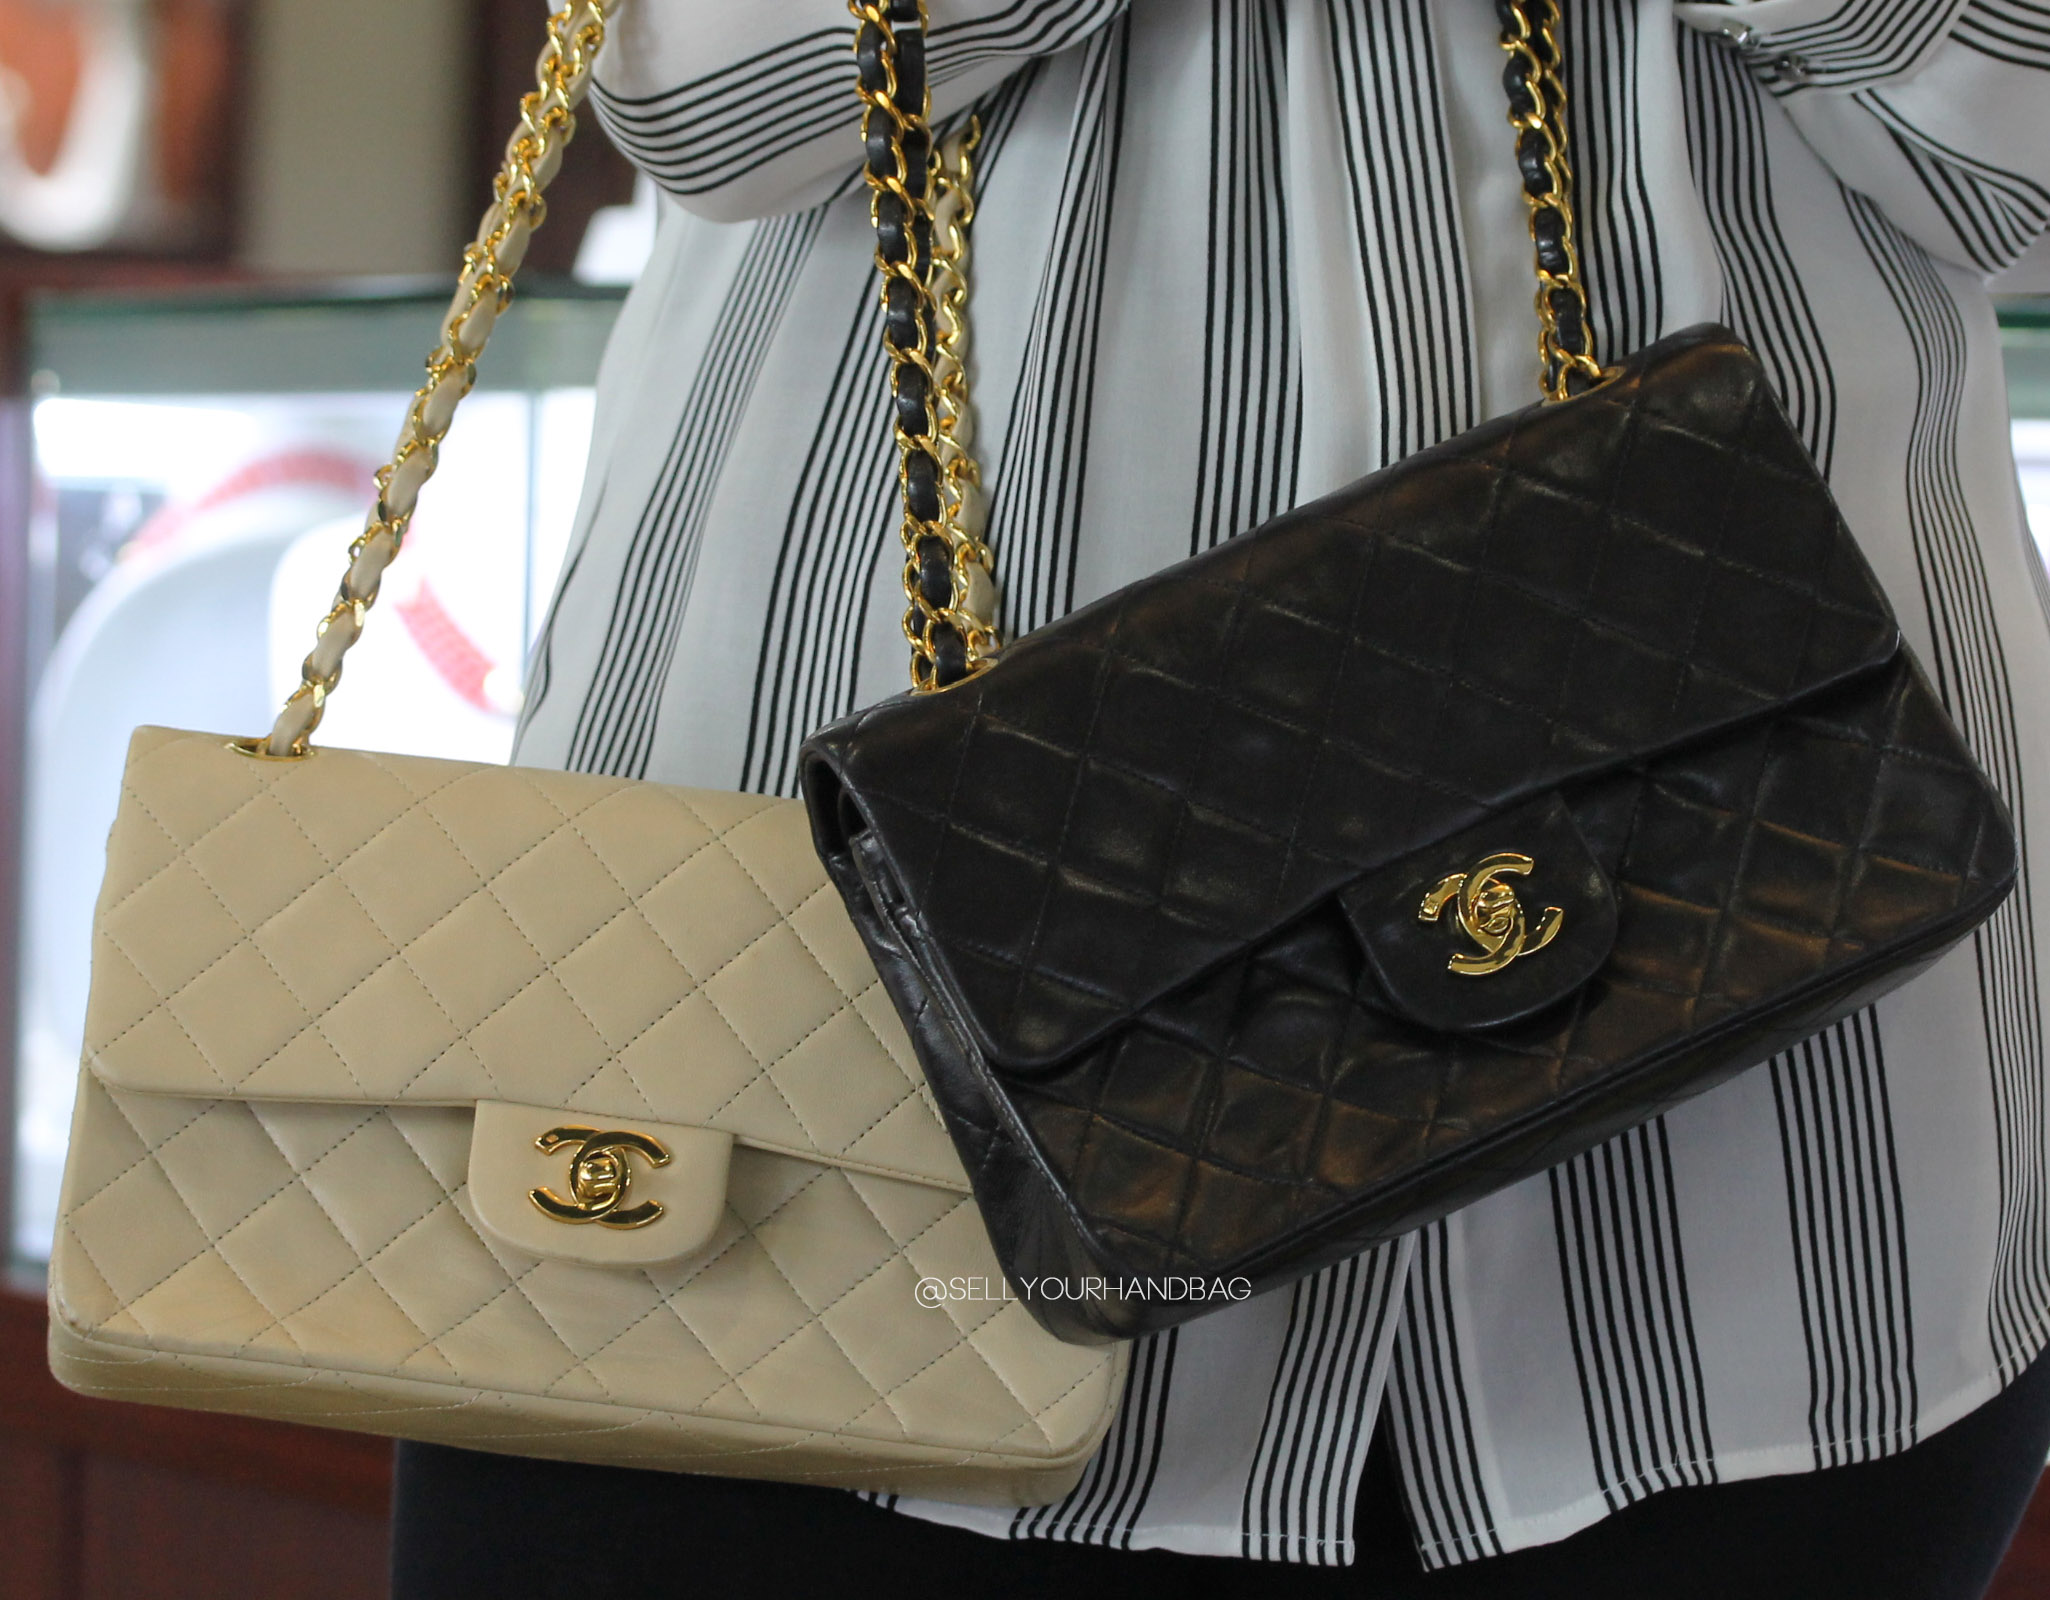 Prada Bags  Chanel Bags How To Spot A Fake 94ad6ad52ae9d